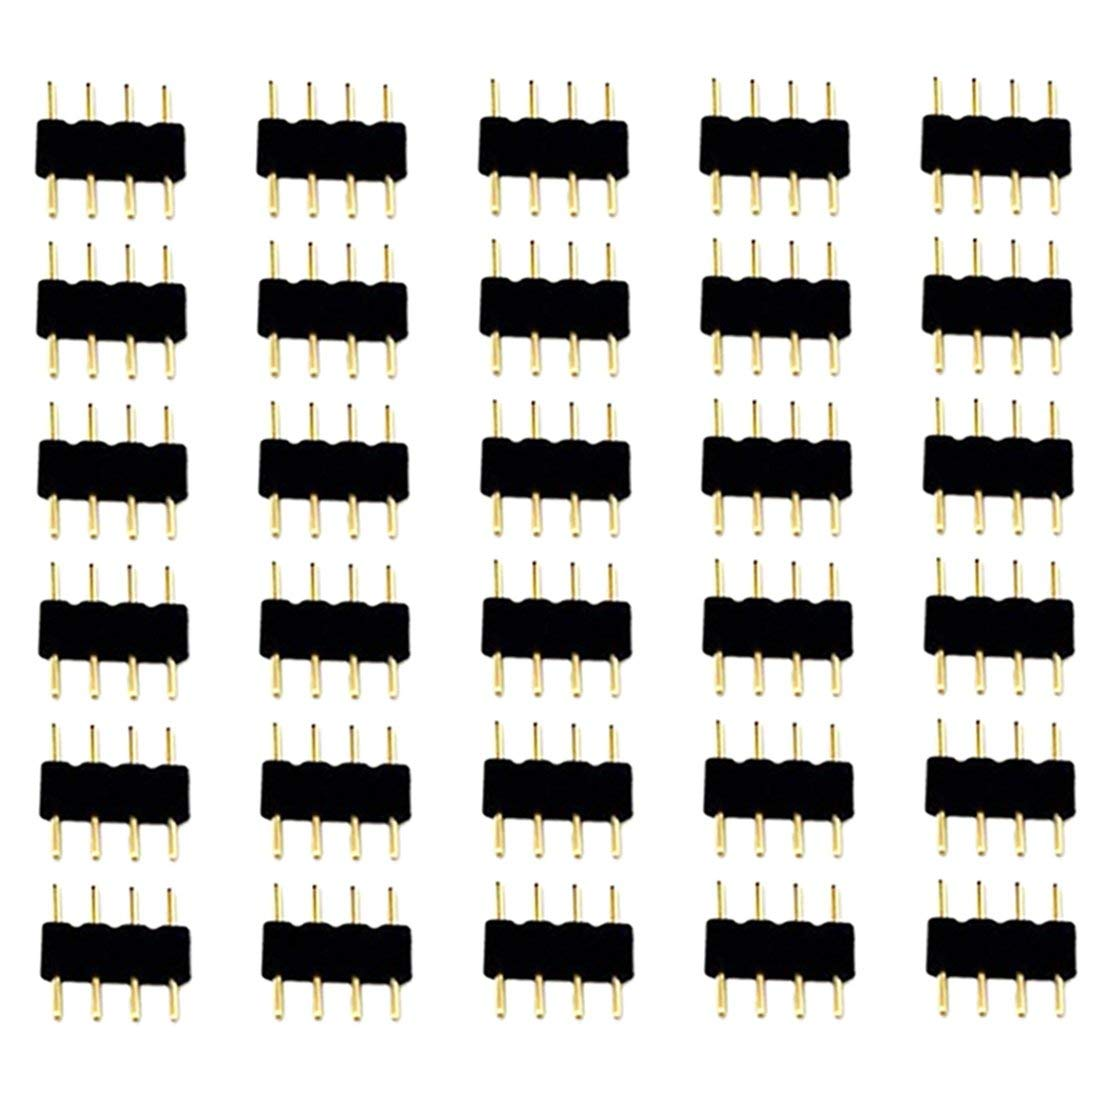 Liwinting 30pcs 4pin Male to Male LED Strip Connector for SMD 3528 2835 5050 RGB LED Strip Light Connect between LED Strip and Remote Controller (30pcs/pack)